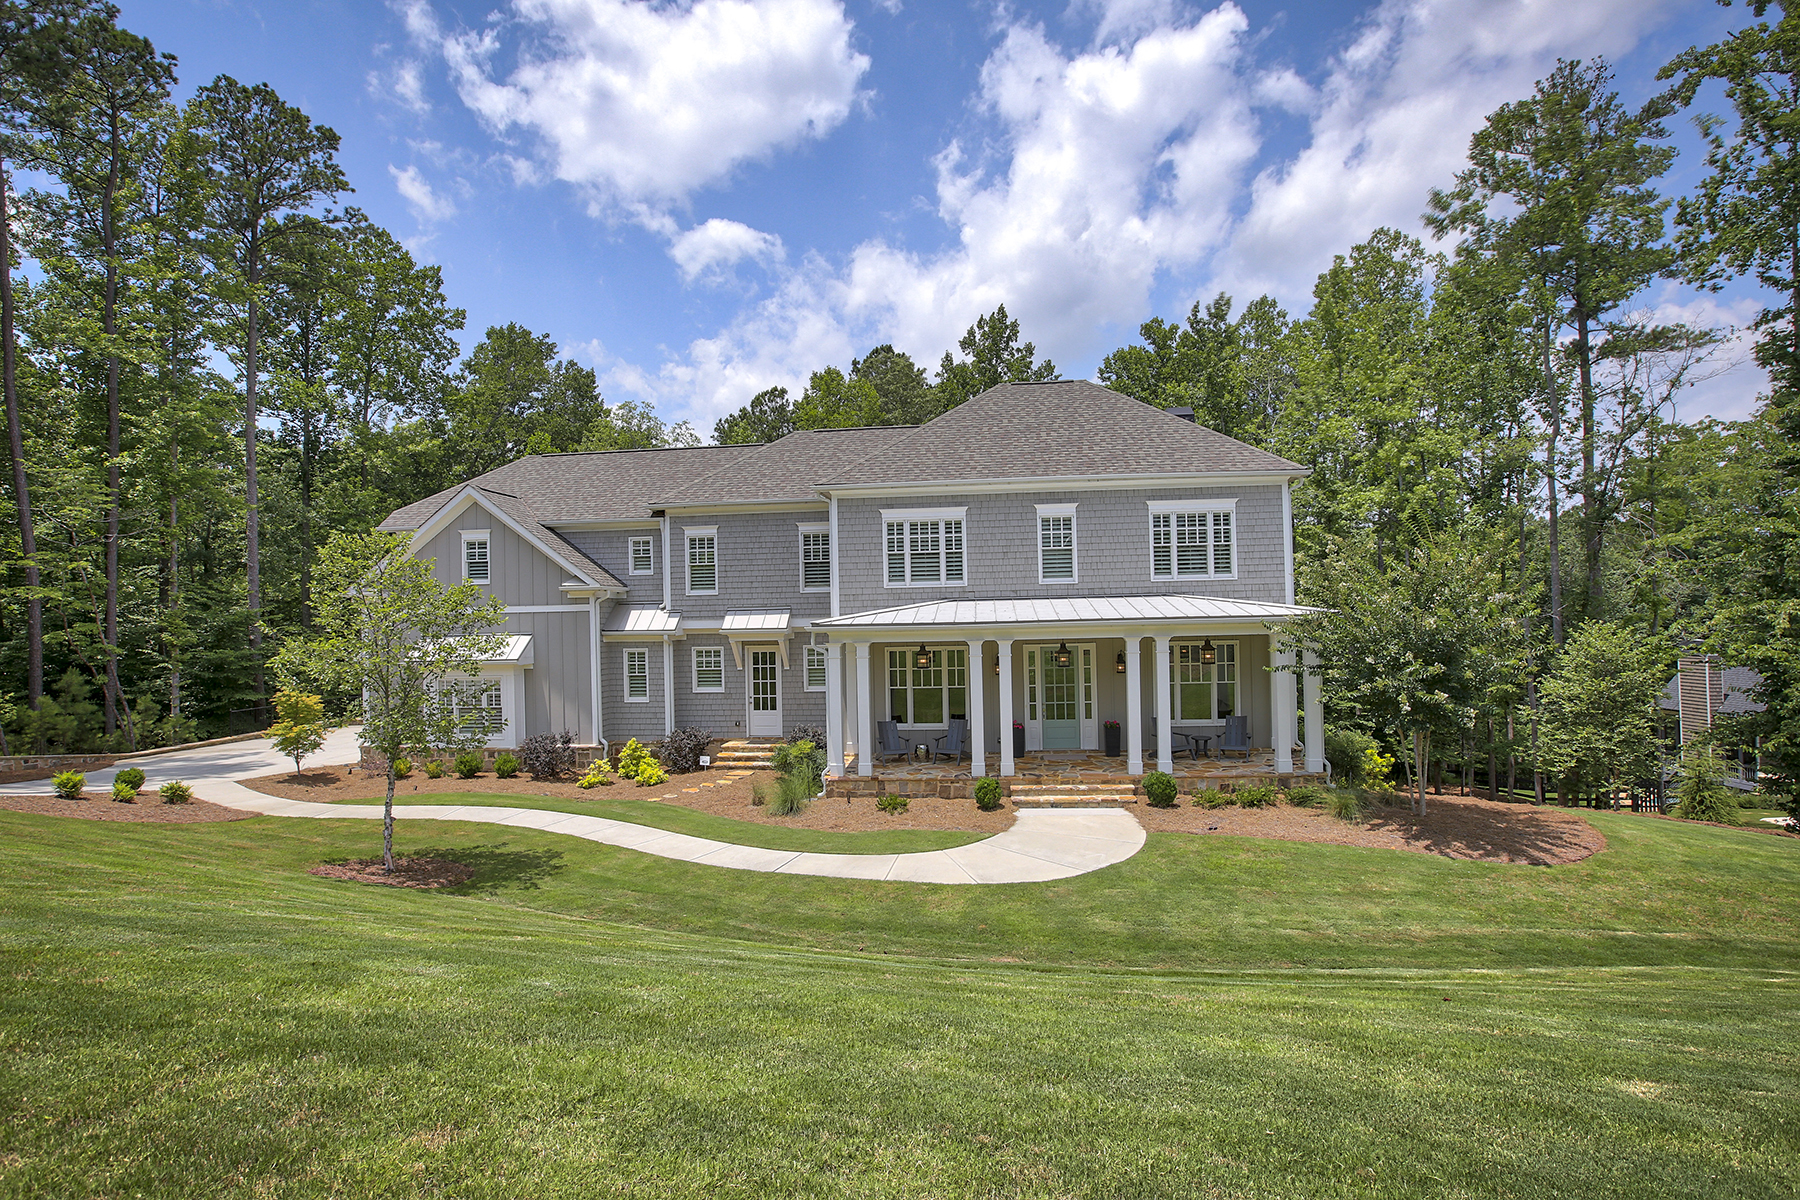 Single Family Home for Sale at Coastal Farmhouse 13476 Hipworth Road Alpharetta, Georgia 30004 United States